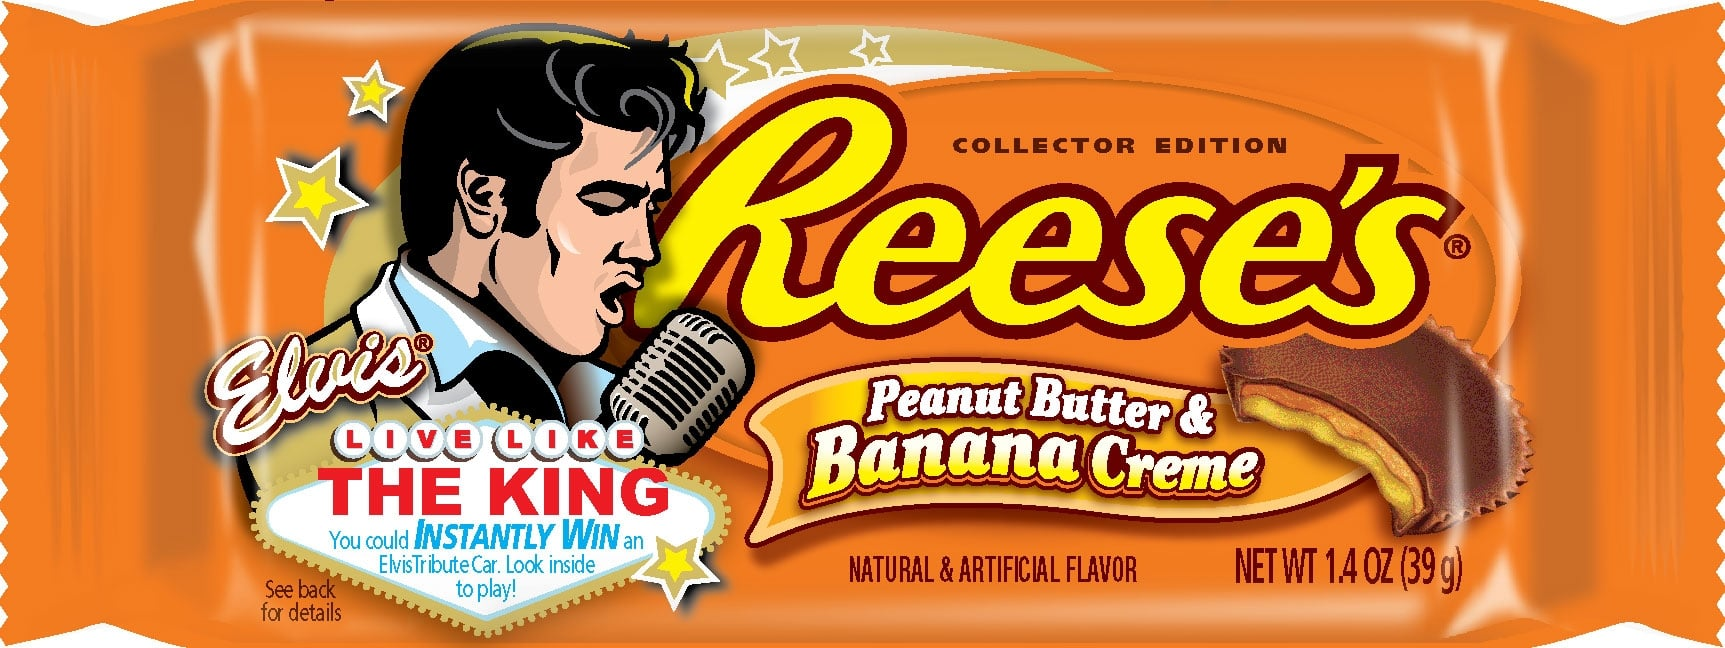 Roberts Auto Group >> Reese's Peanut Butter Cups Fun Facts | POPSUGAR Food